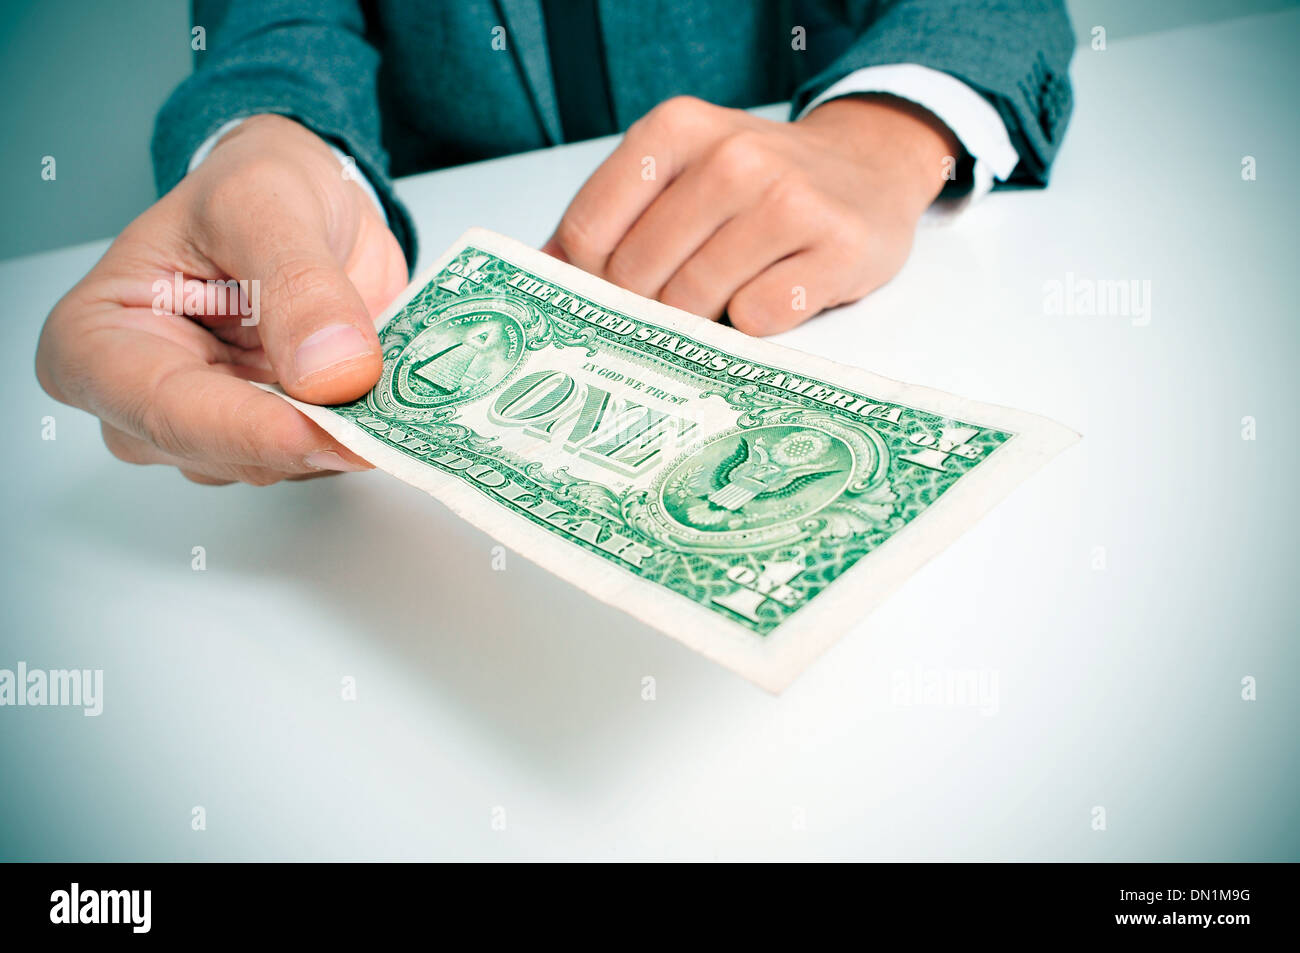 a man wearing a suit sitting in a desk offering a one US dollar bill Stock Photo